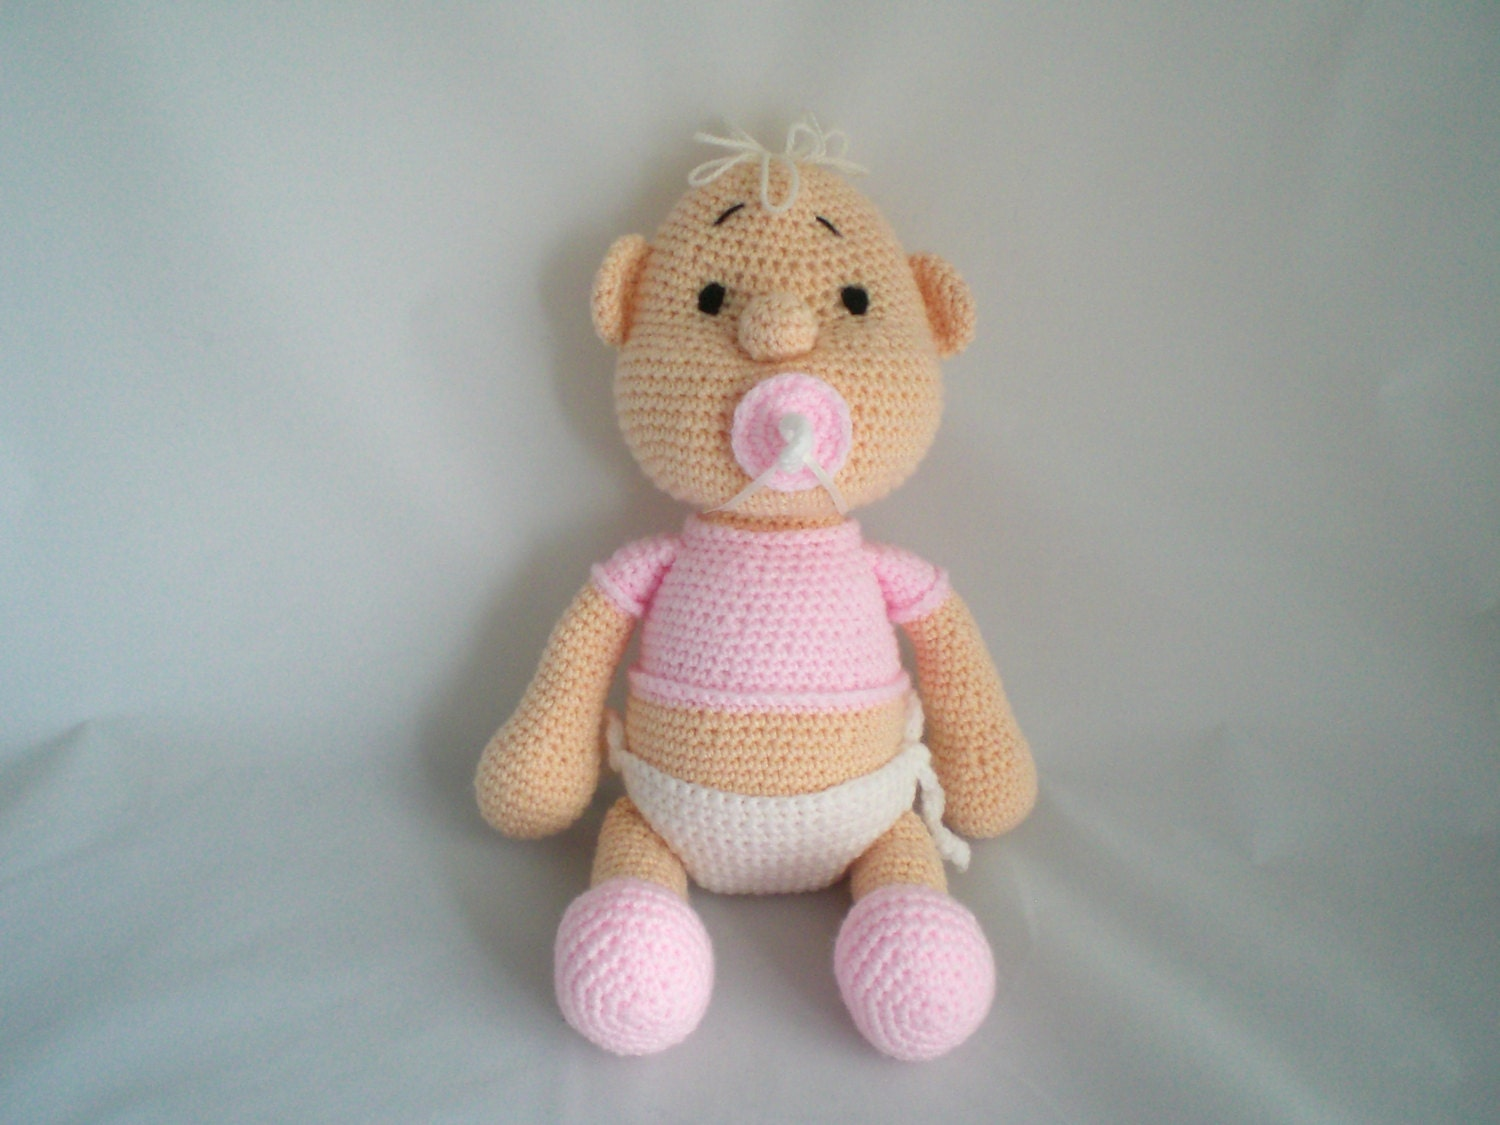 Crochet Doll / New Baby Doll Soft Toy / Crochet Amigurumi